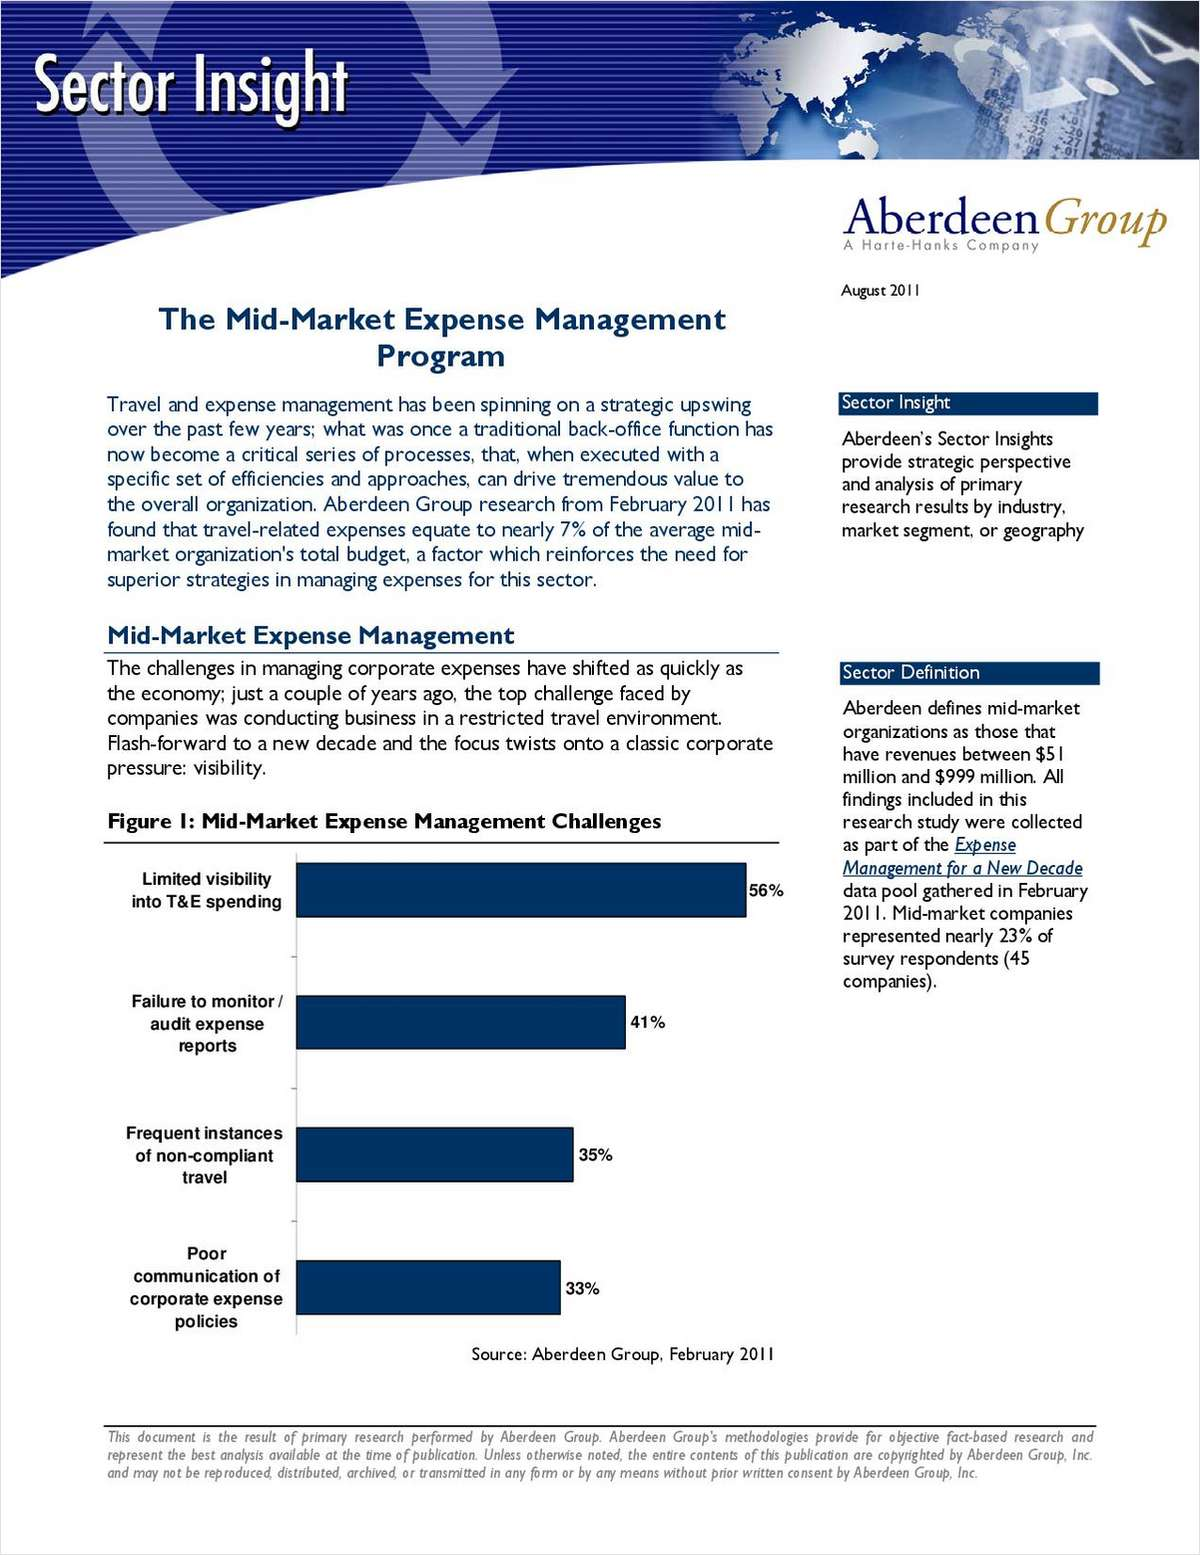 The Mid-Market Expense Management Program